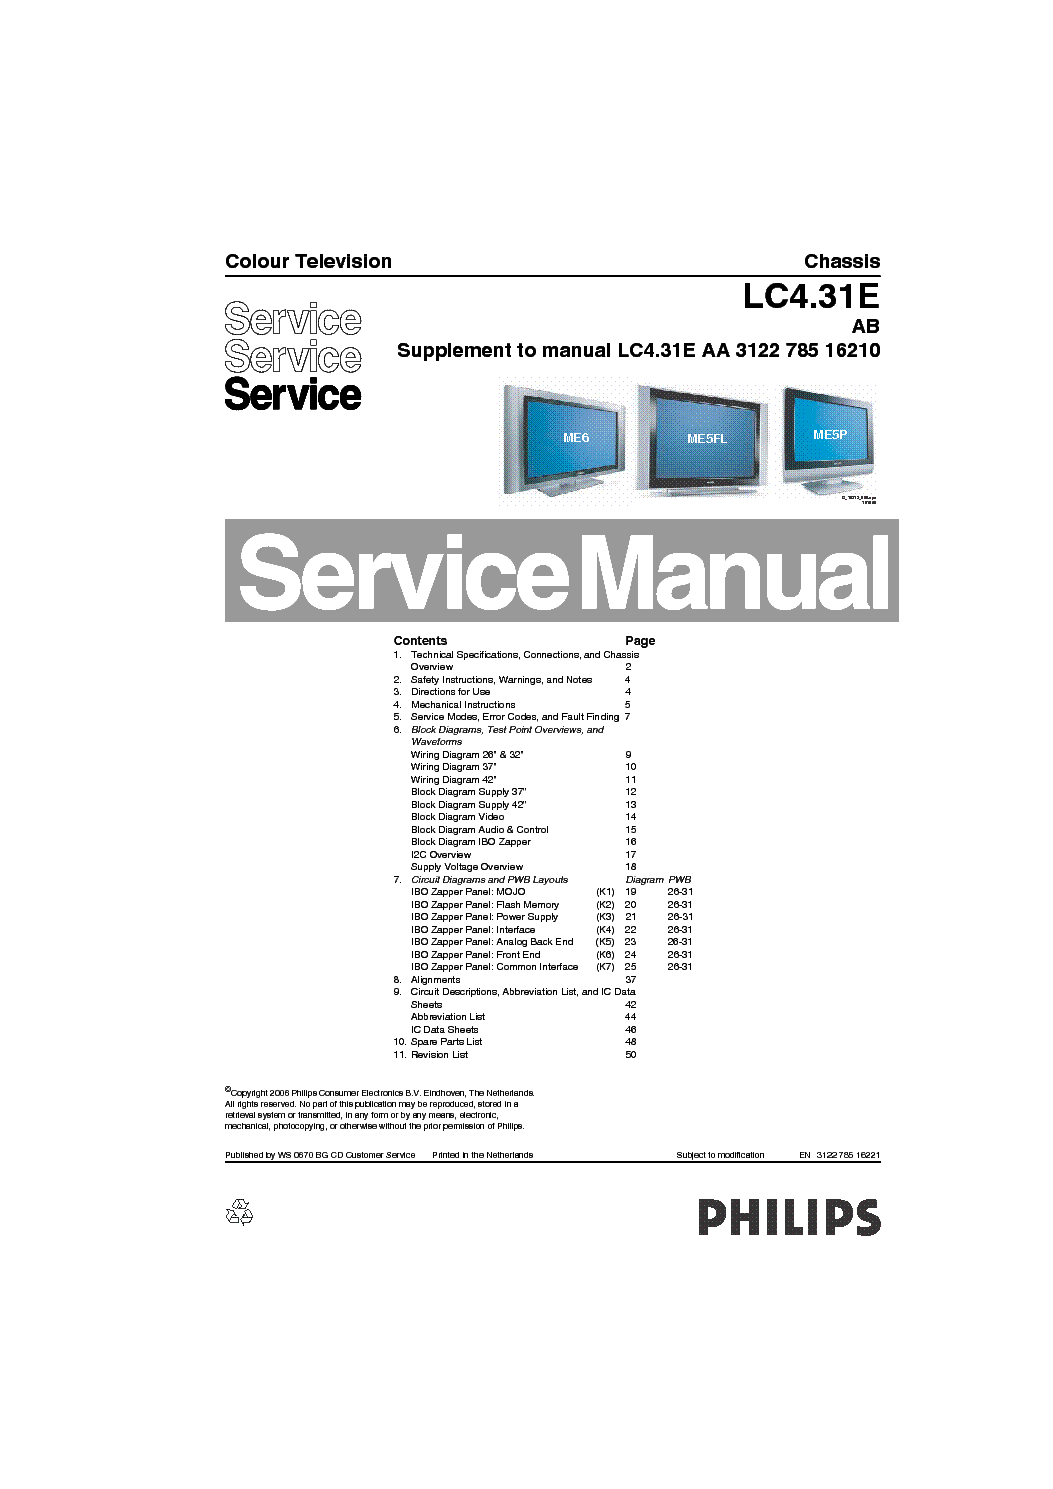 PHILIPS CHASSIS LC4.31E-AB Service Manual download